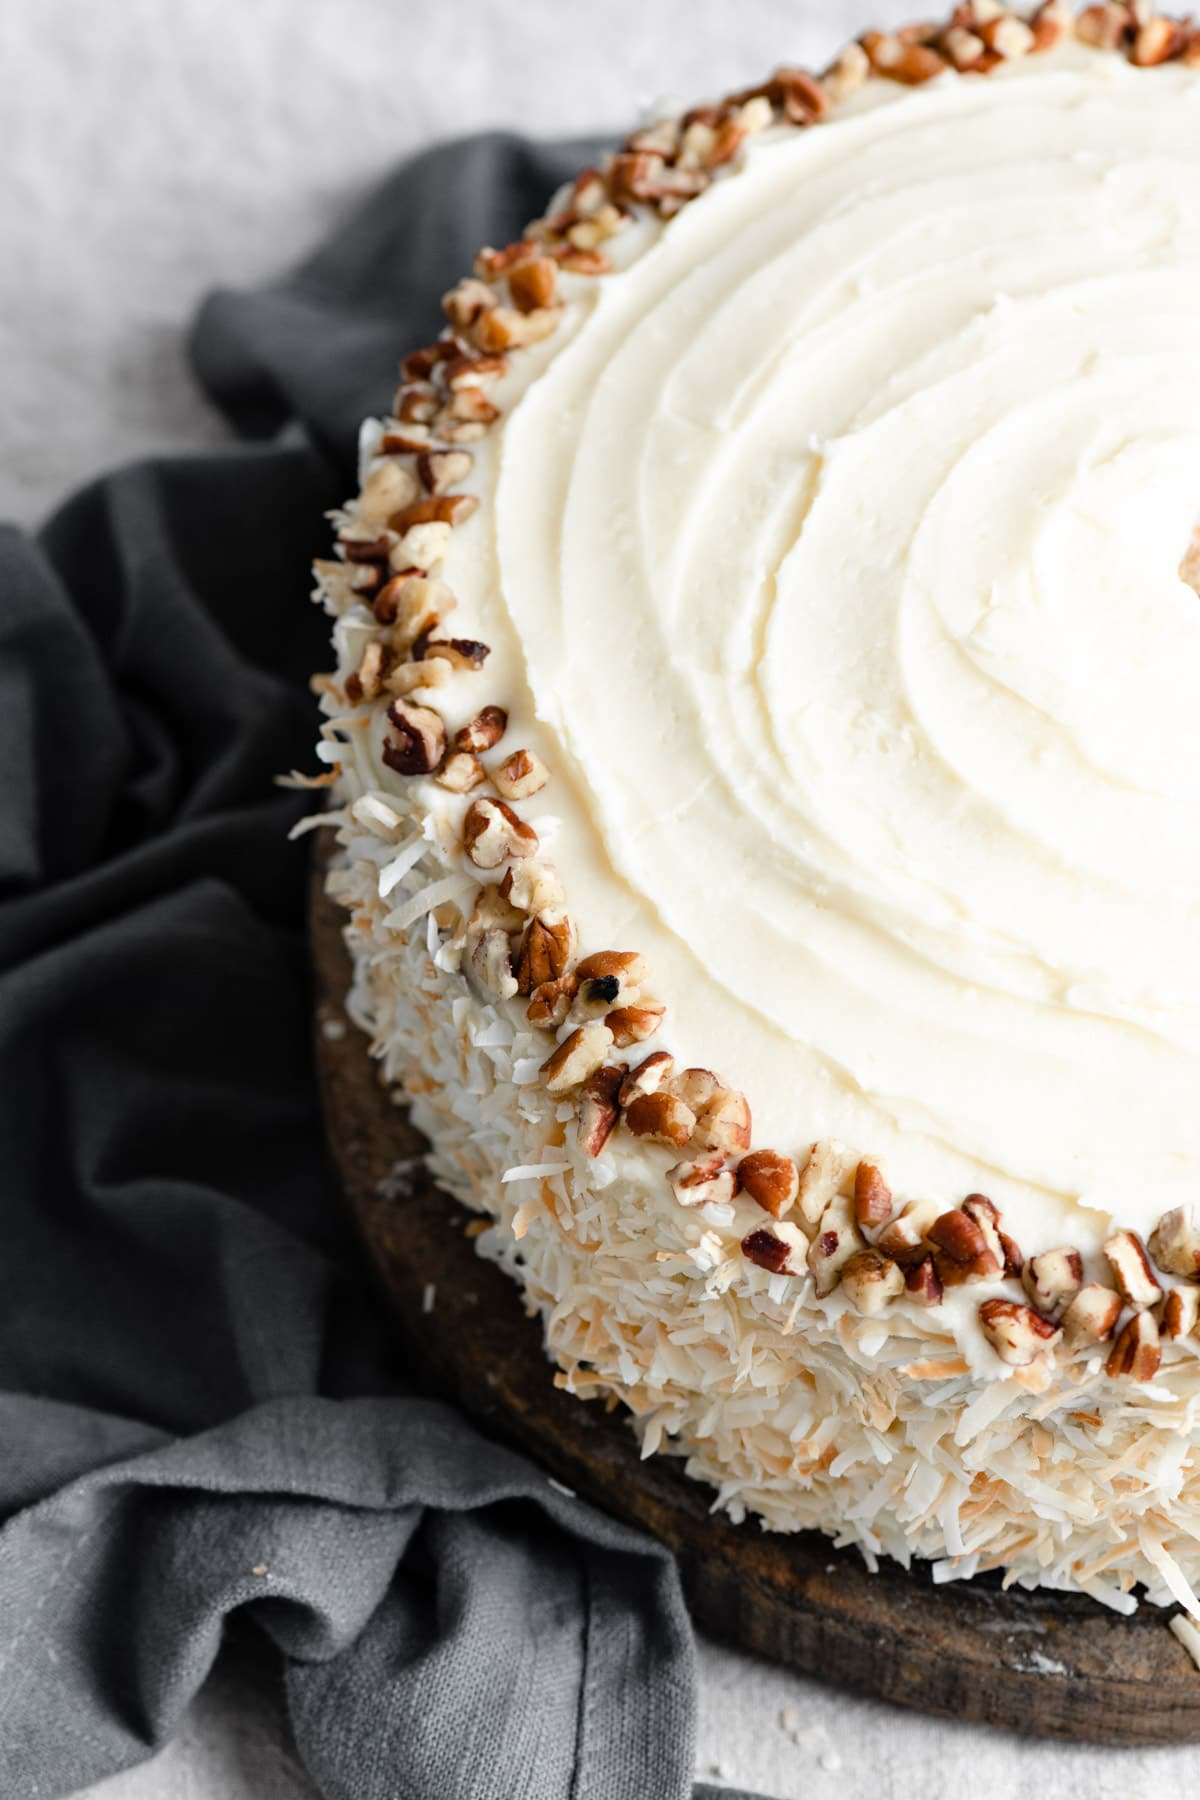 Close up image of whole hummingbird cake showing cream cheese frosting, coconut decorated edges and a ring of pecans on top.